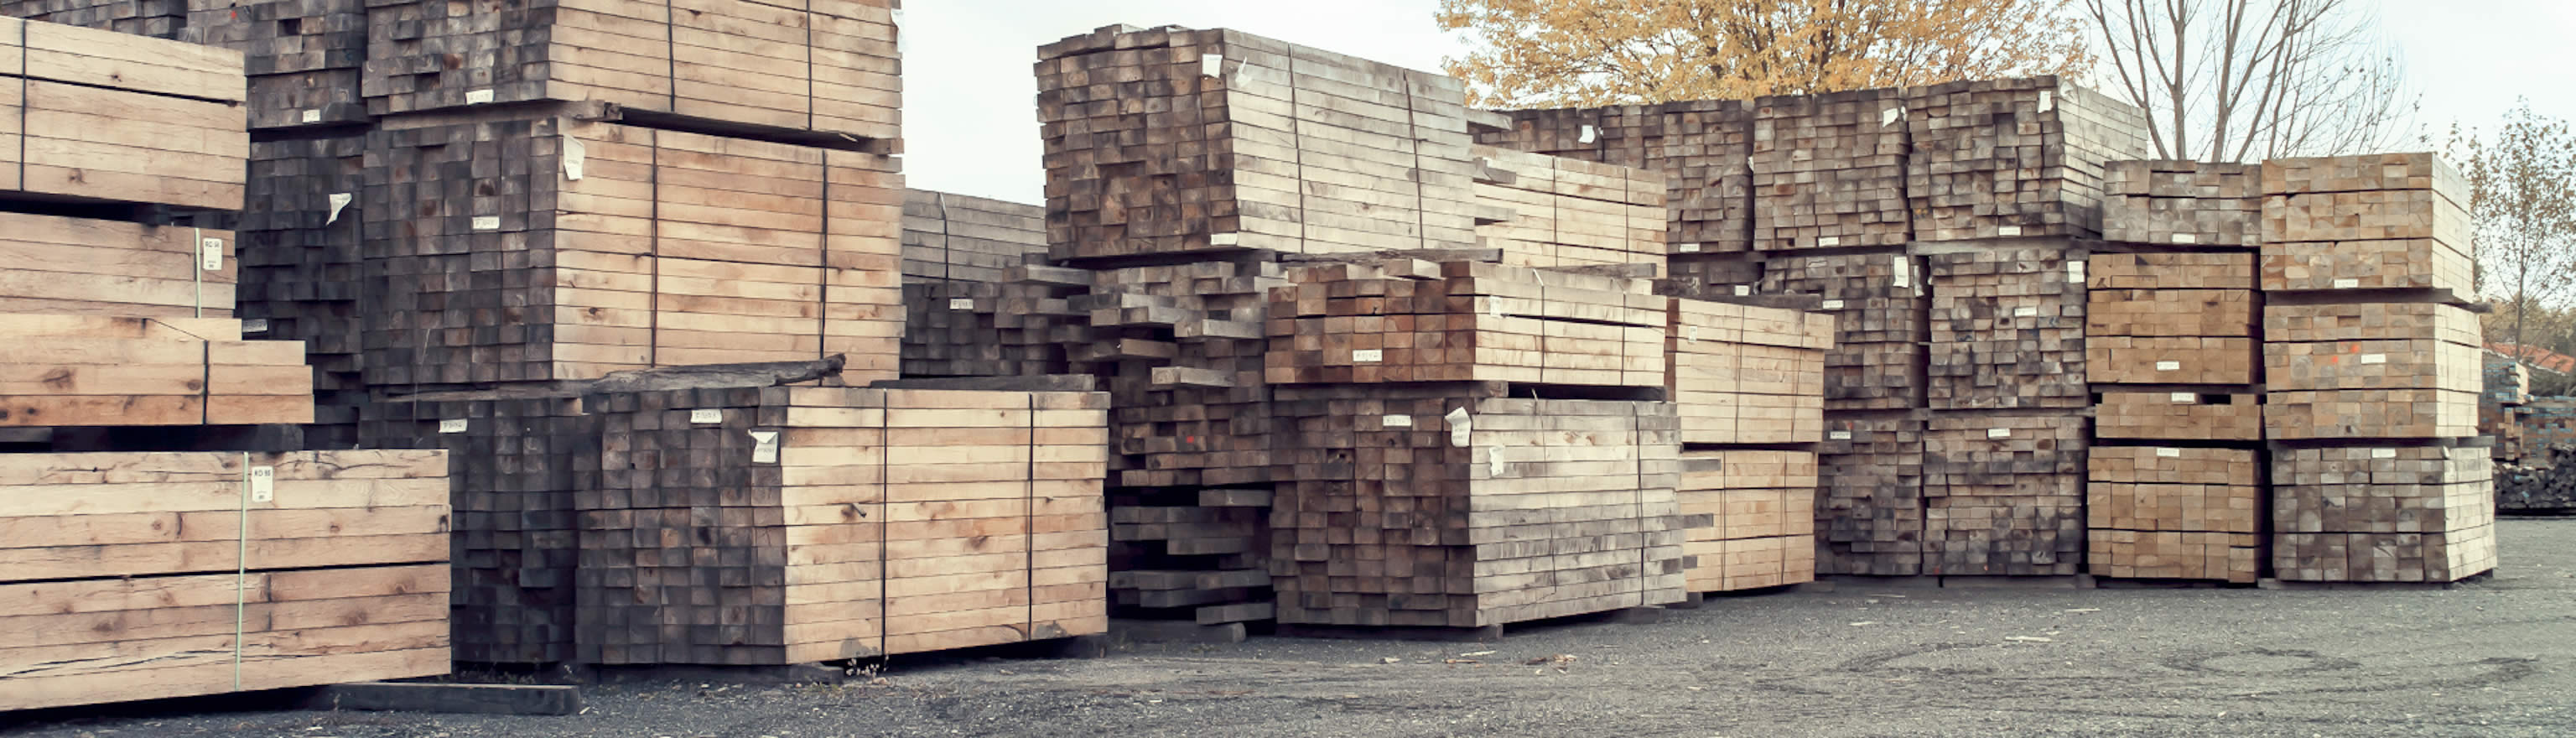 Lumber yard - Laurentide Lumber Co.